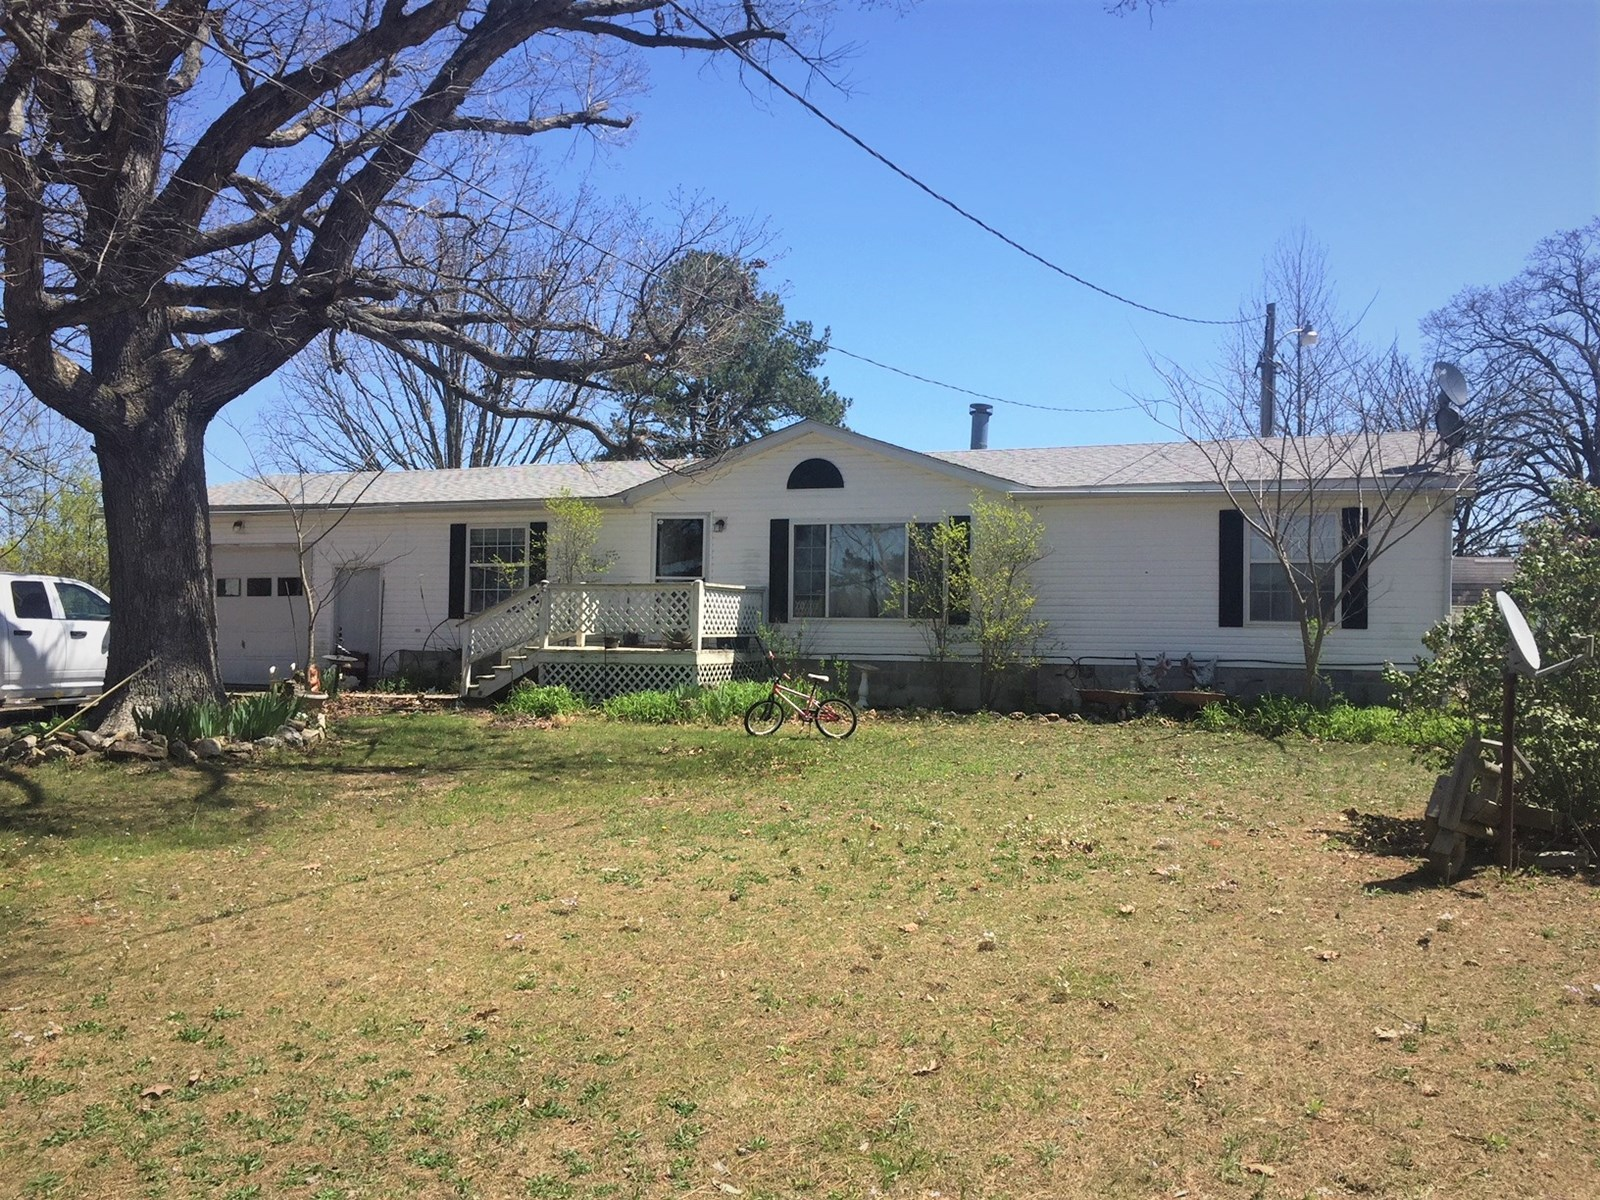 FOR SALE COUNTRY HOME FOR SALE IN DENT COUNTY SALEM MO